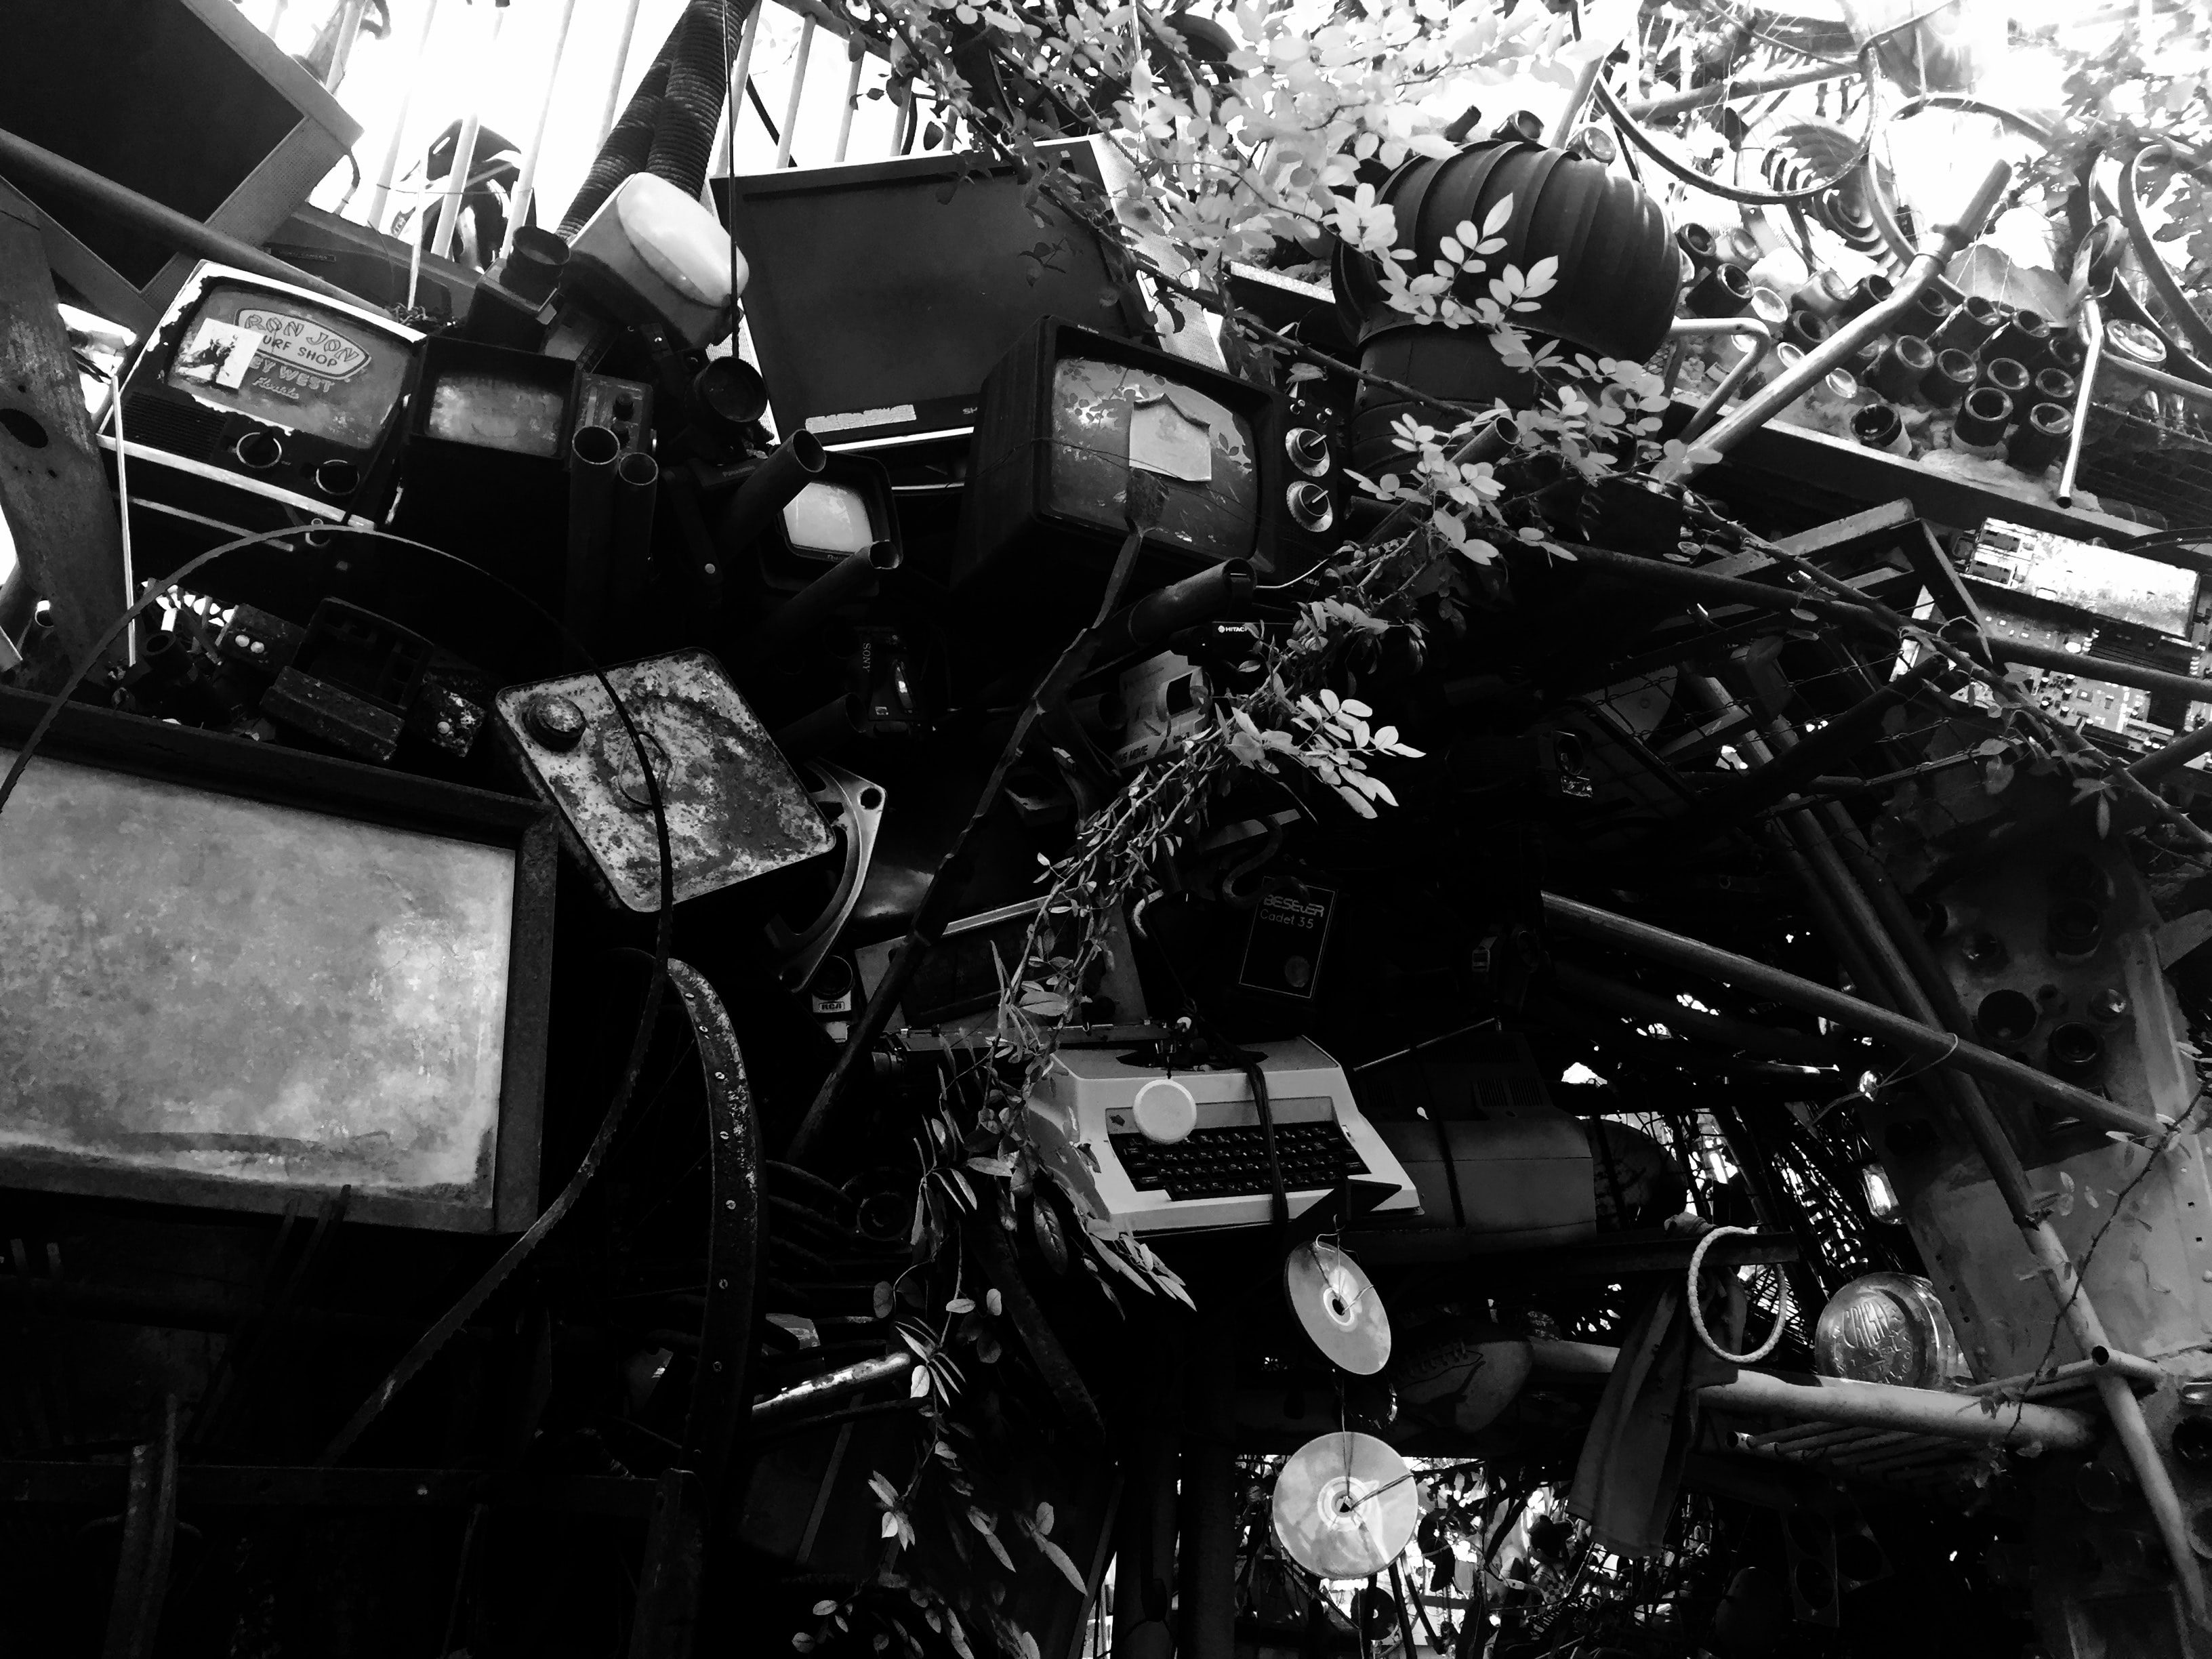 A black and white photo of a landfill site.